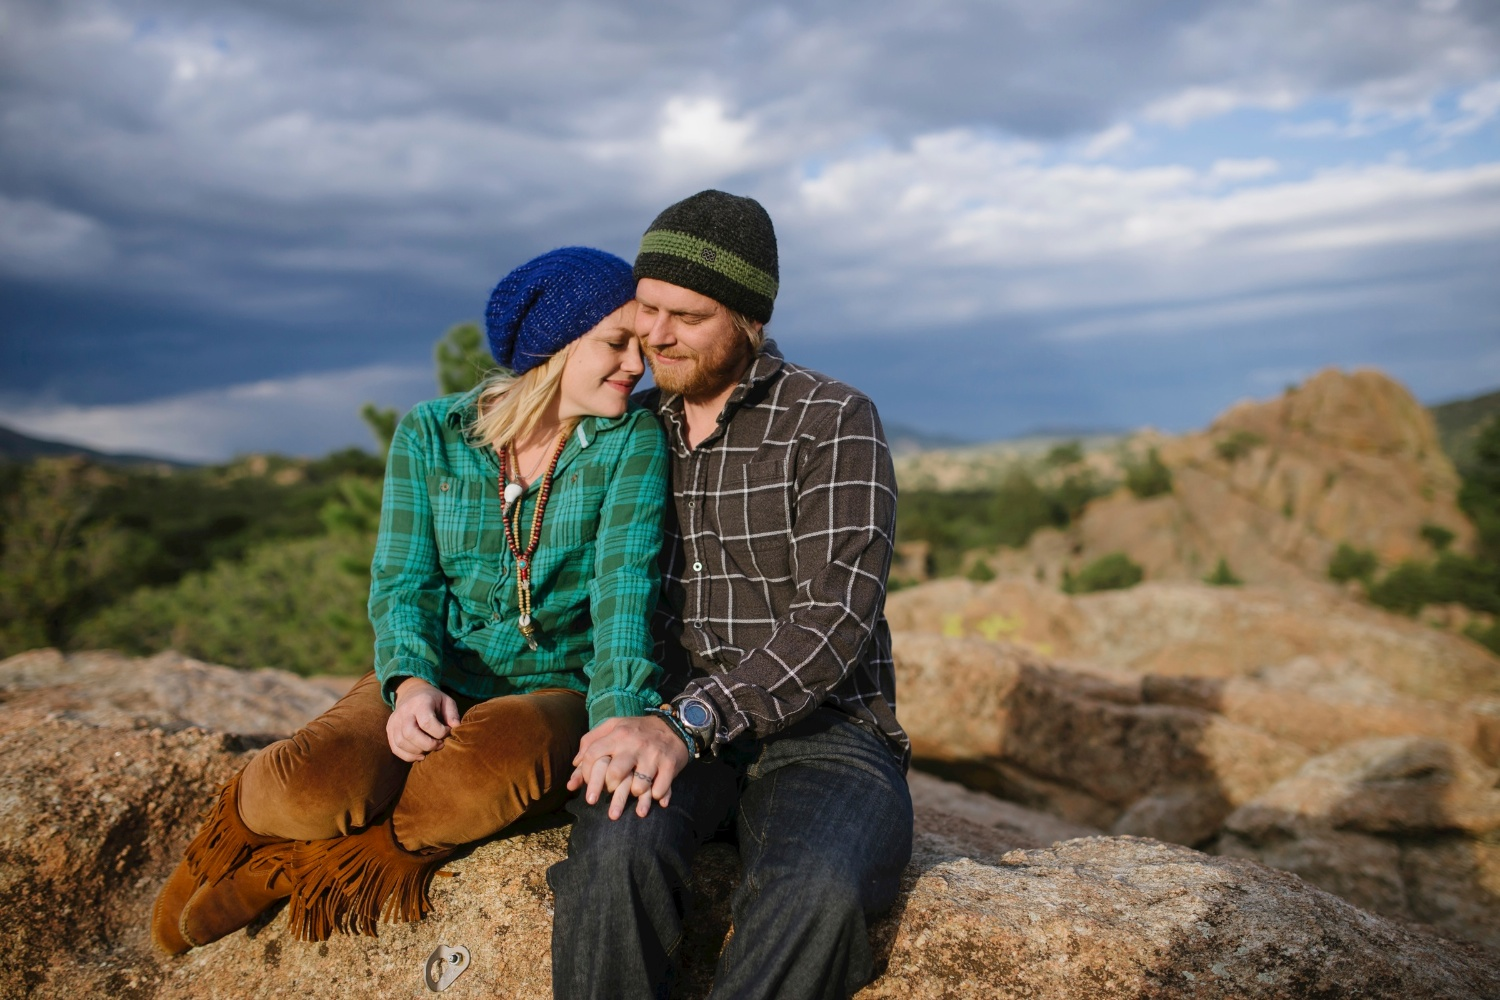 Love this sunset hike adventure photo shoot by Maddie Mae Photography